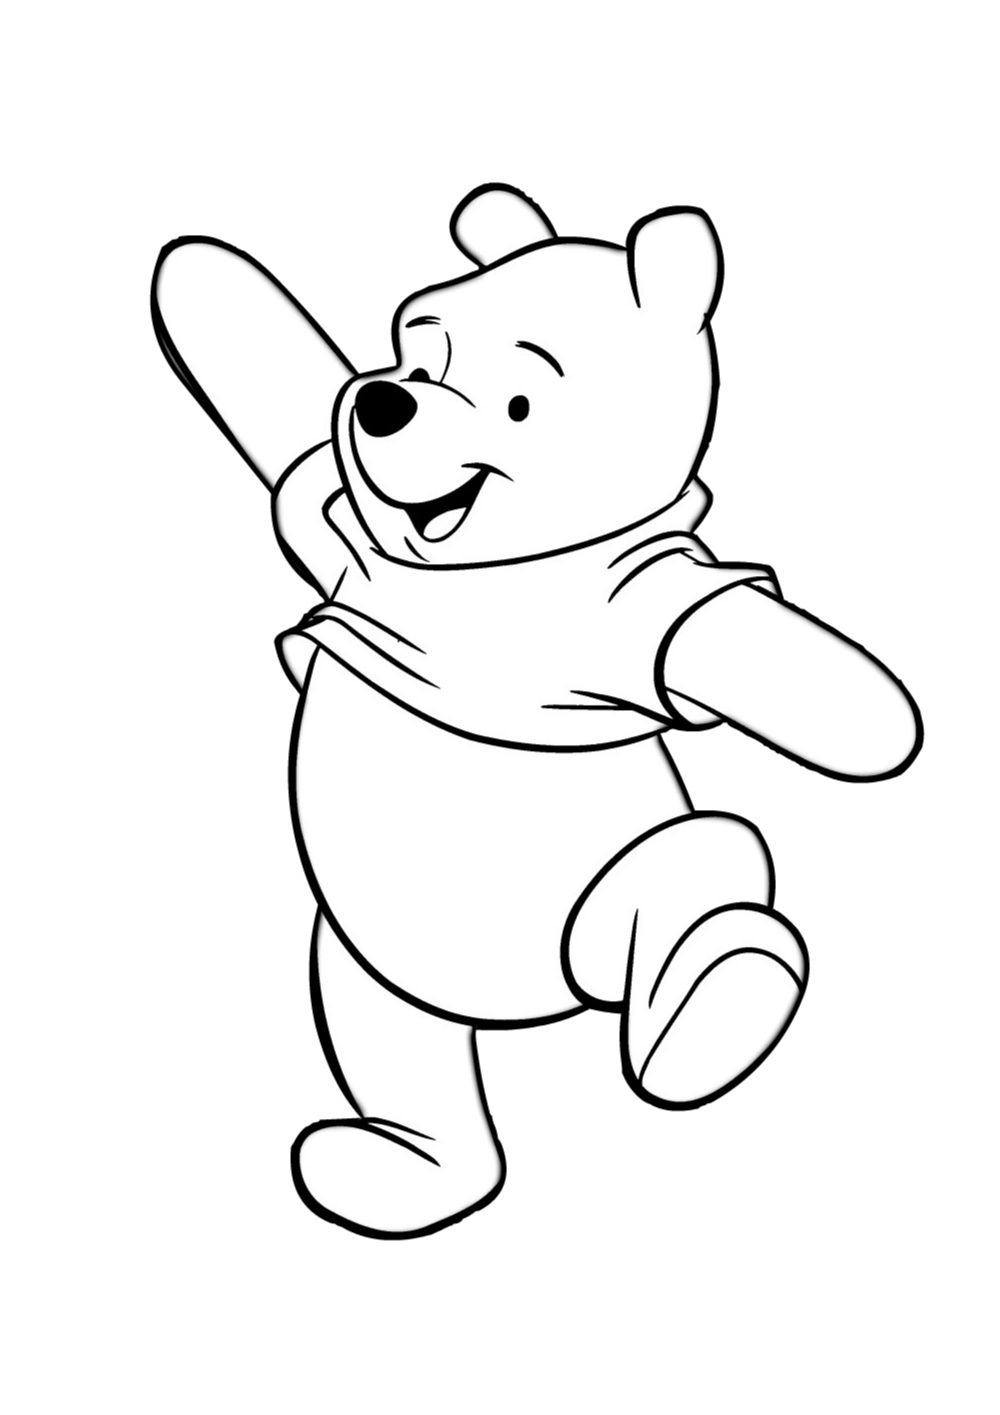 Winnie The Pooh Coloring Page Tv Series Coloring Page | PicGifs.com | 1415x1000